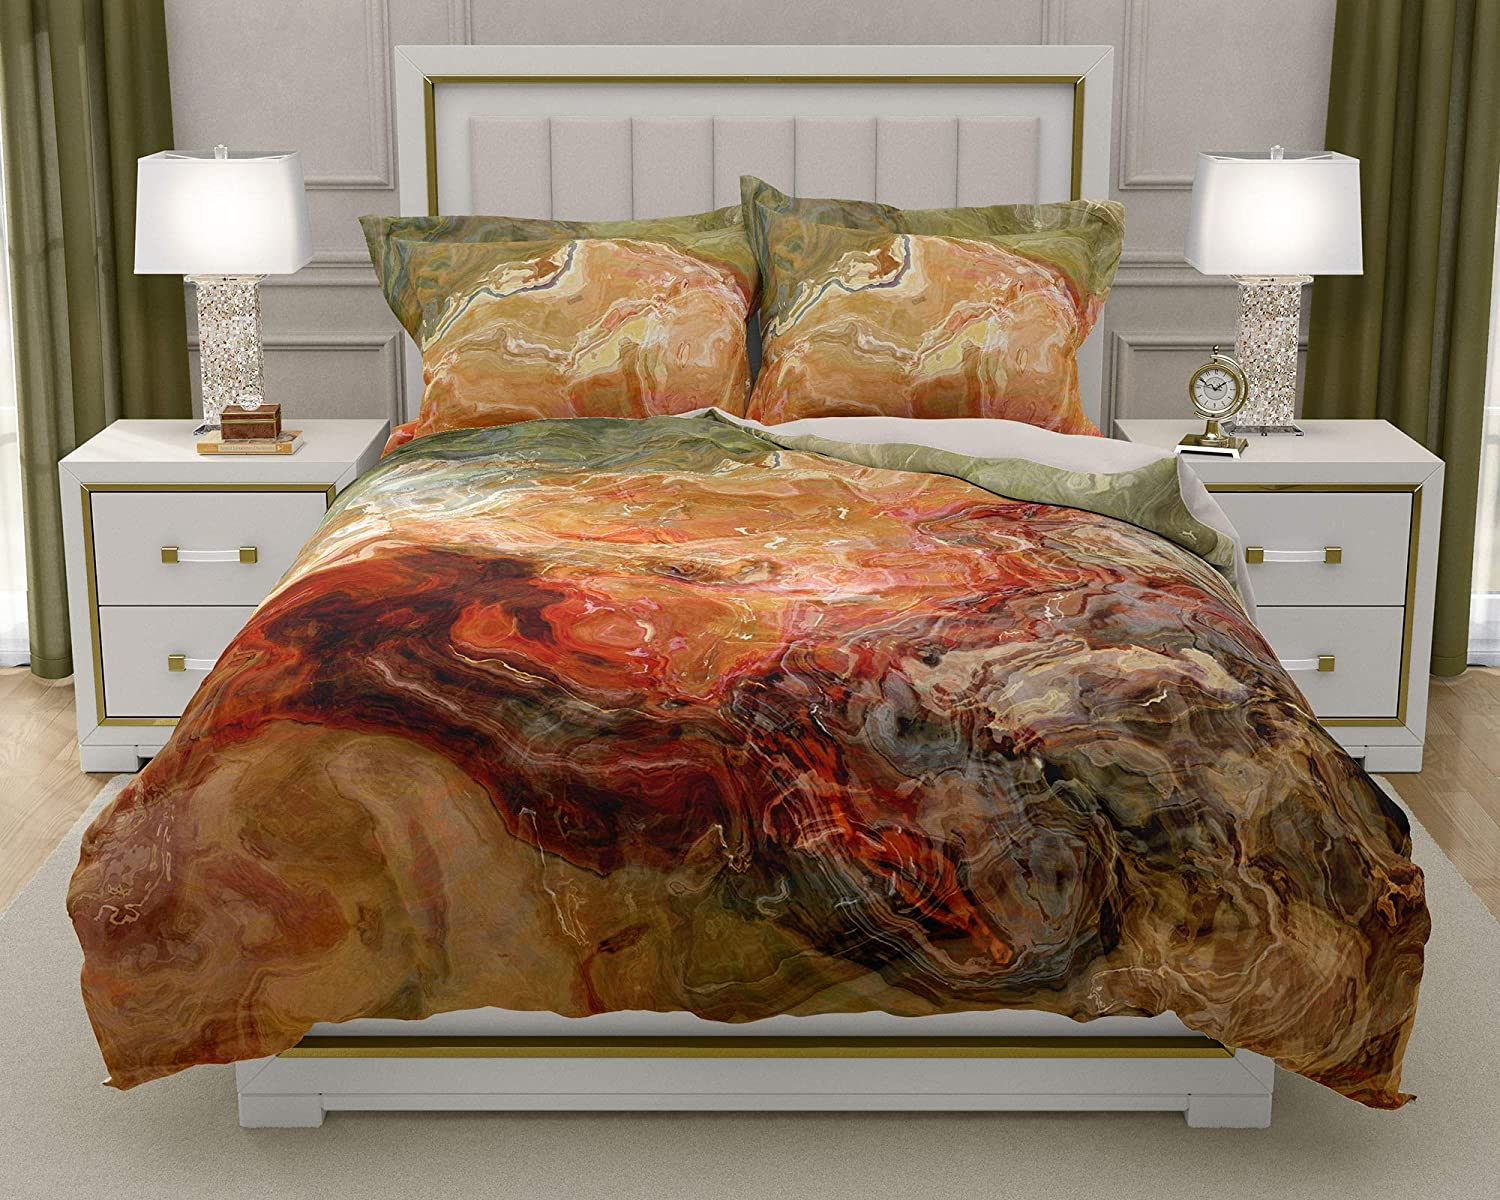 Image of King or Queen 3 pc Duvet Cover Set with abstract art, Firestarter